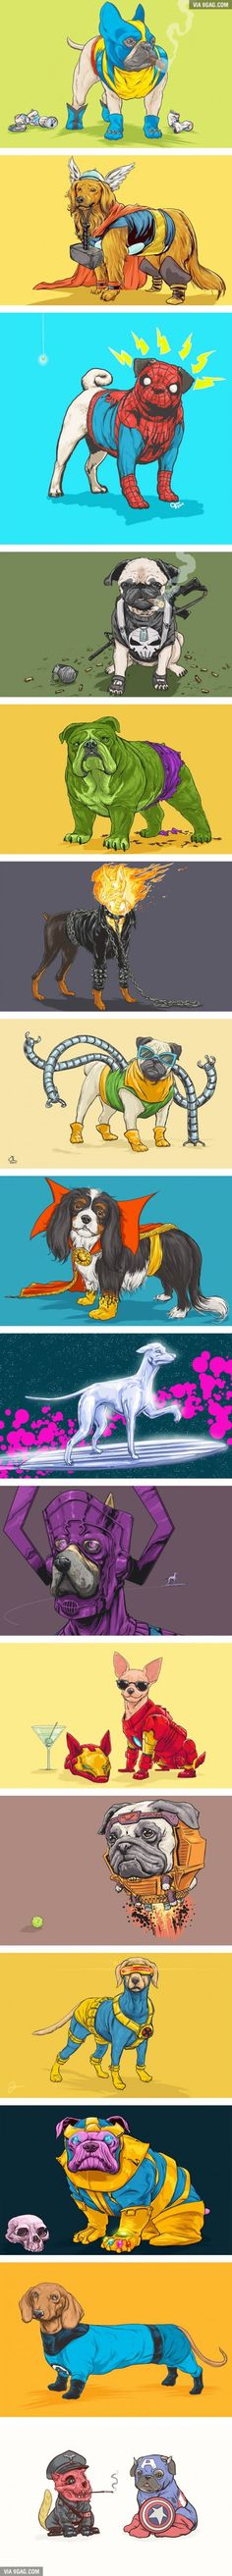 Dogs of the Marvel Universe (By Josh Lynch)